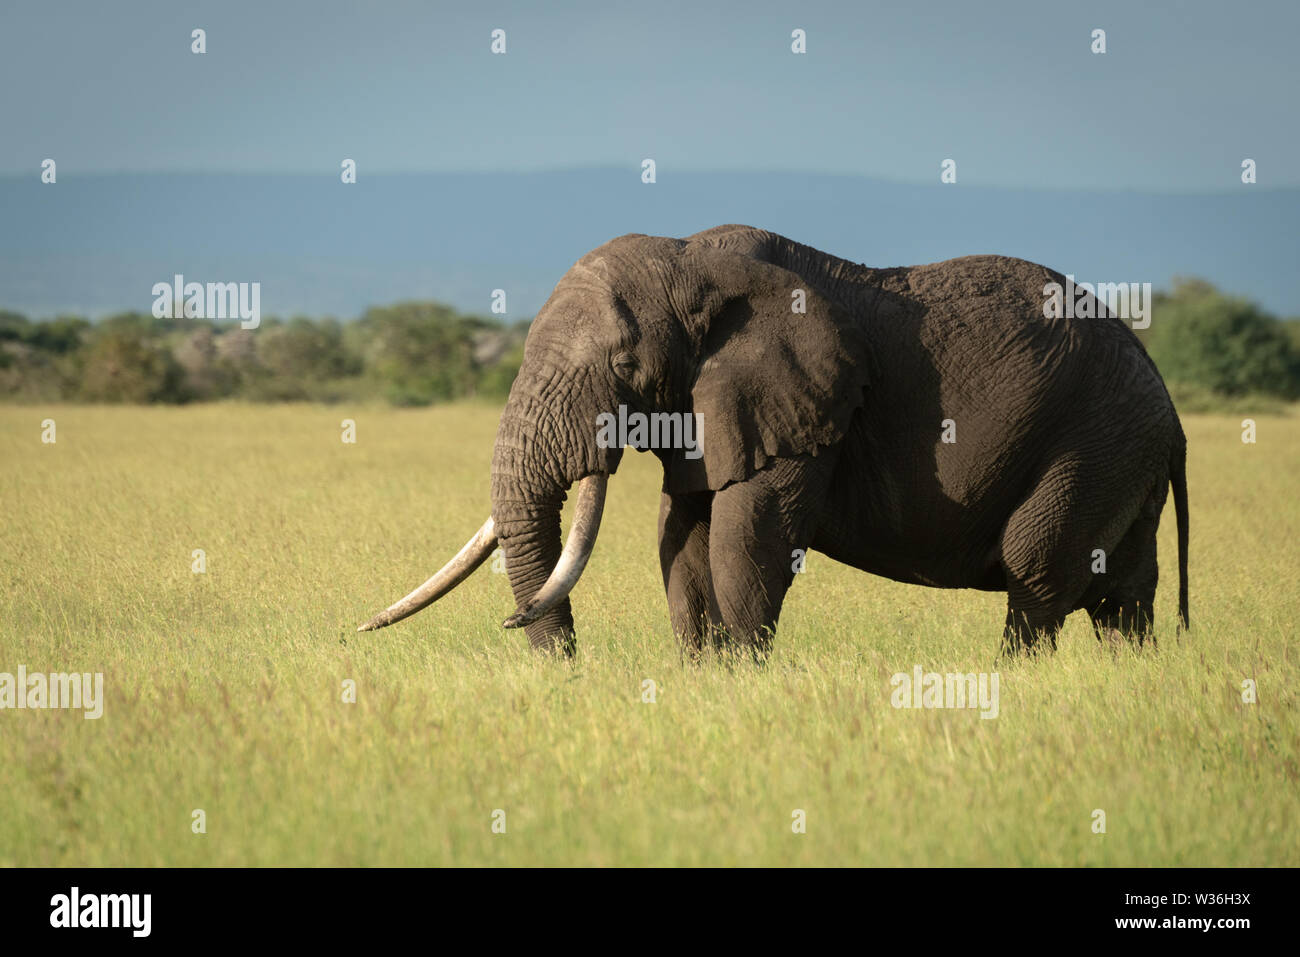 African bush elephant stands showing massive tusks - Stock Image